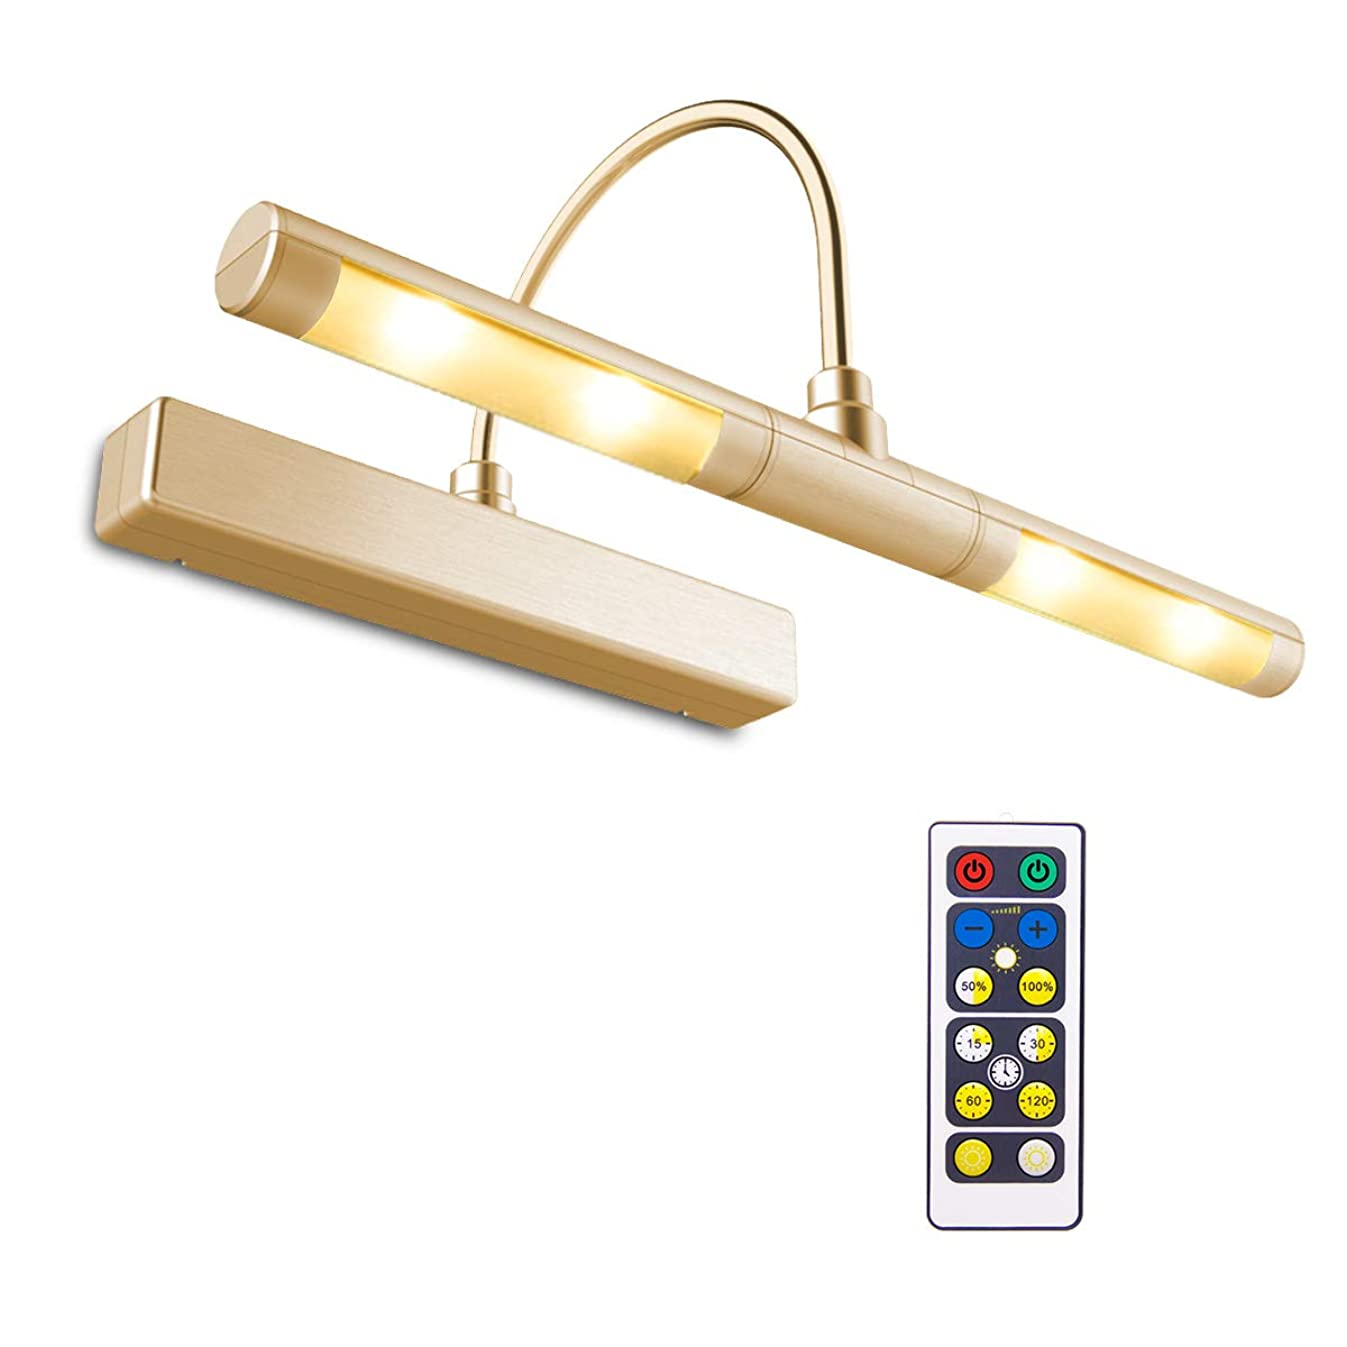 BIGLIGHT Wireless Battery Powered Bright LED Picture Light with Remote Control, 13 Inch Swivel Light Head with 3 Lighting Modes, Dimmable Lamp for Painting/Photo/Portrait/Art/Picture Frame, Gold